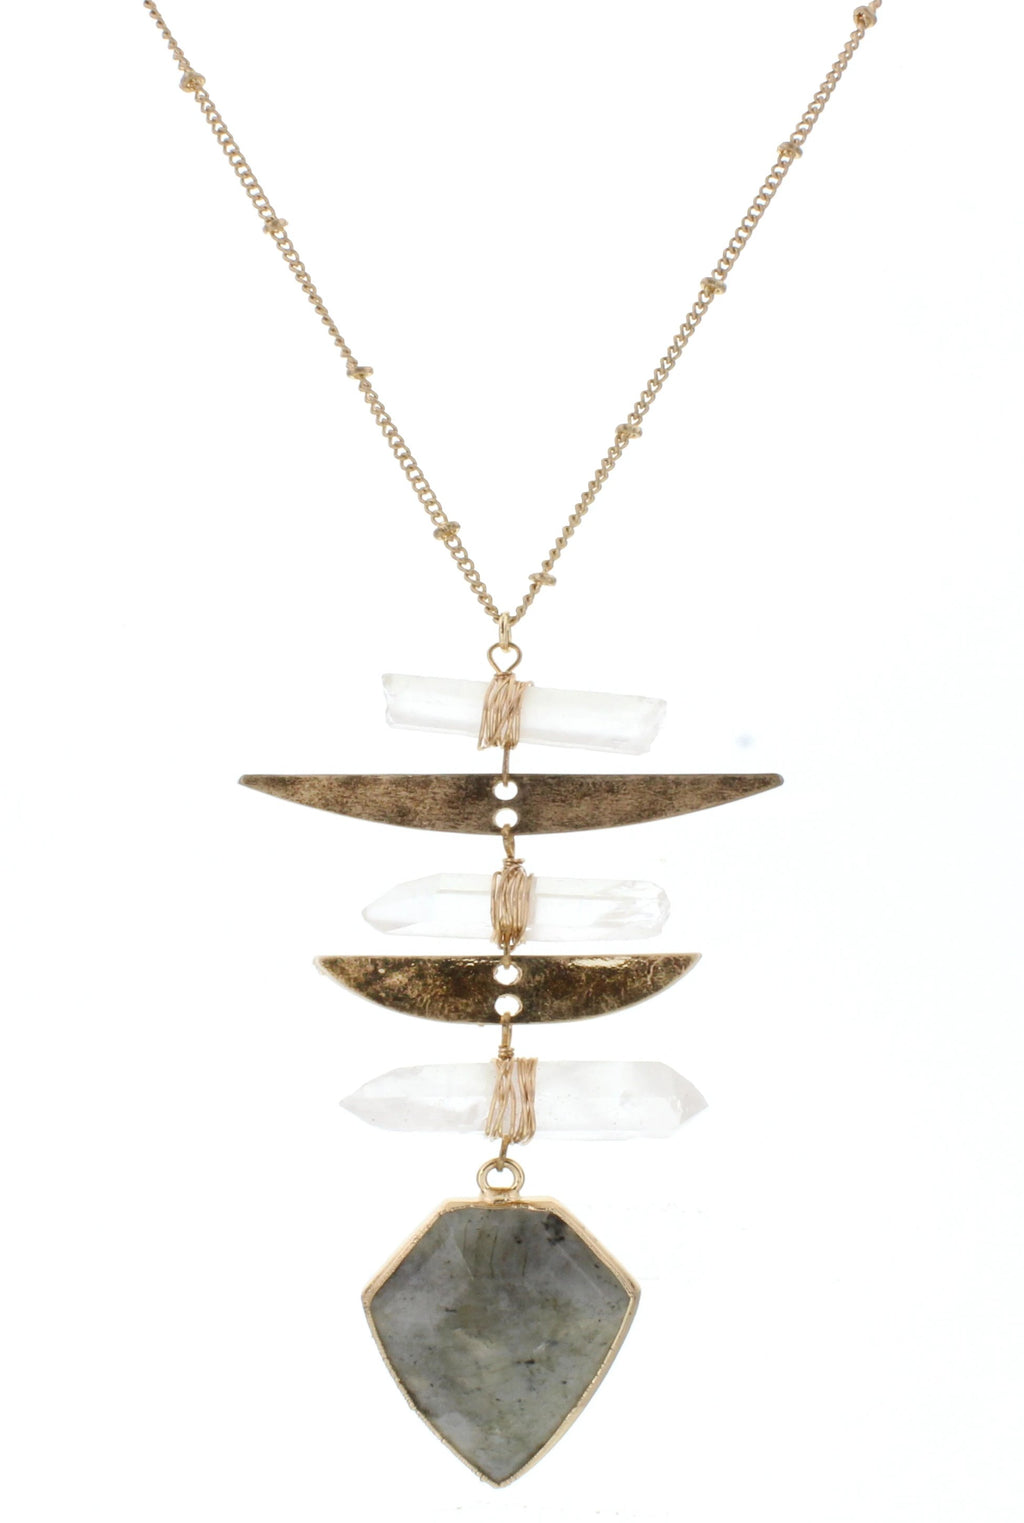 JM Briley Labrodite Stone With Triangle Pendant Necklace - Free Souls Boutique